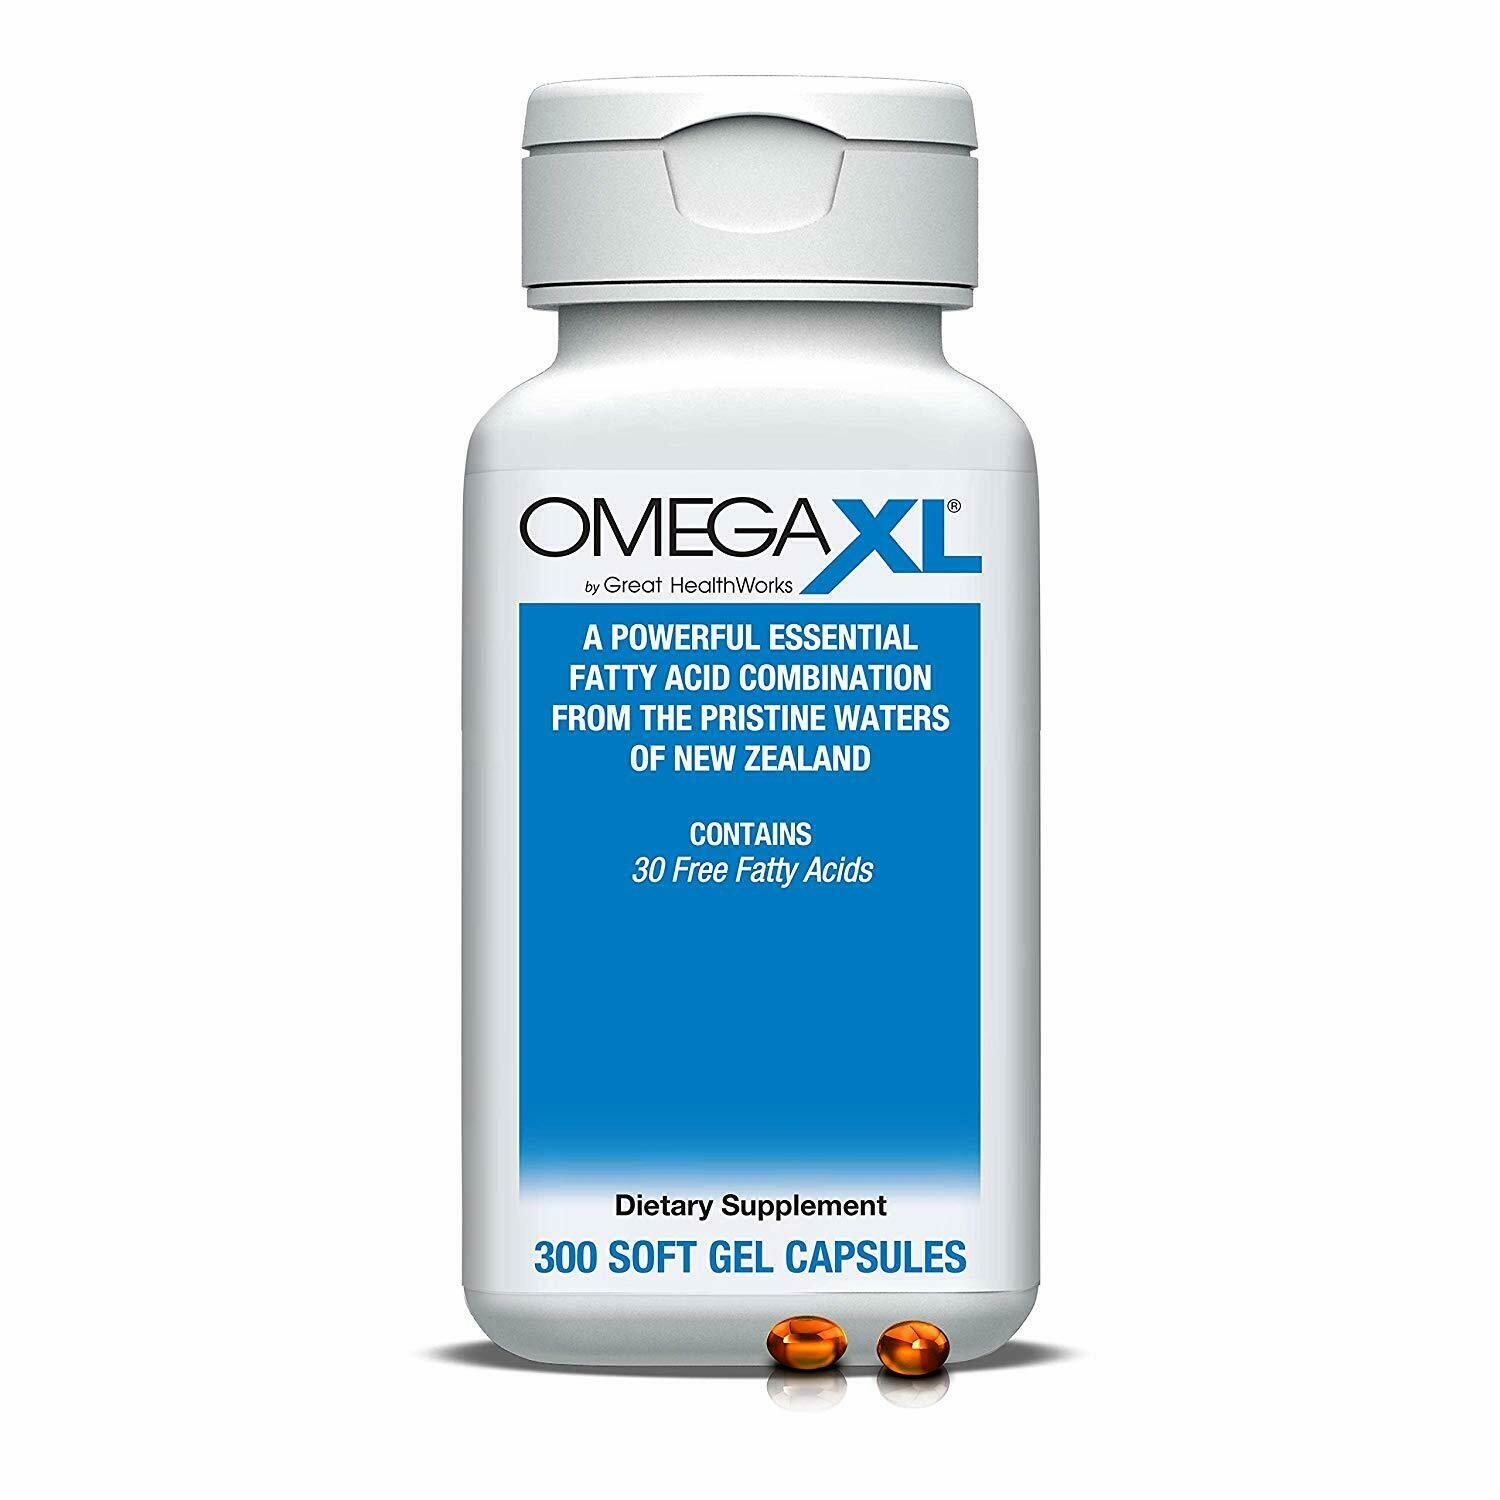 Omega XL 300 Capsules - Green Lipped Mussel New Zealand Omega 3